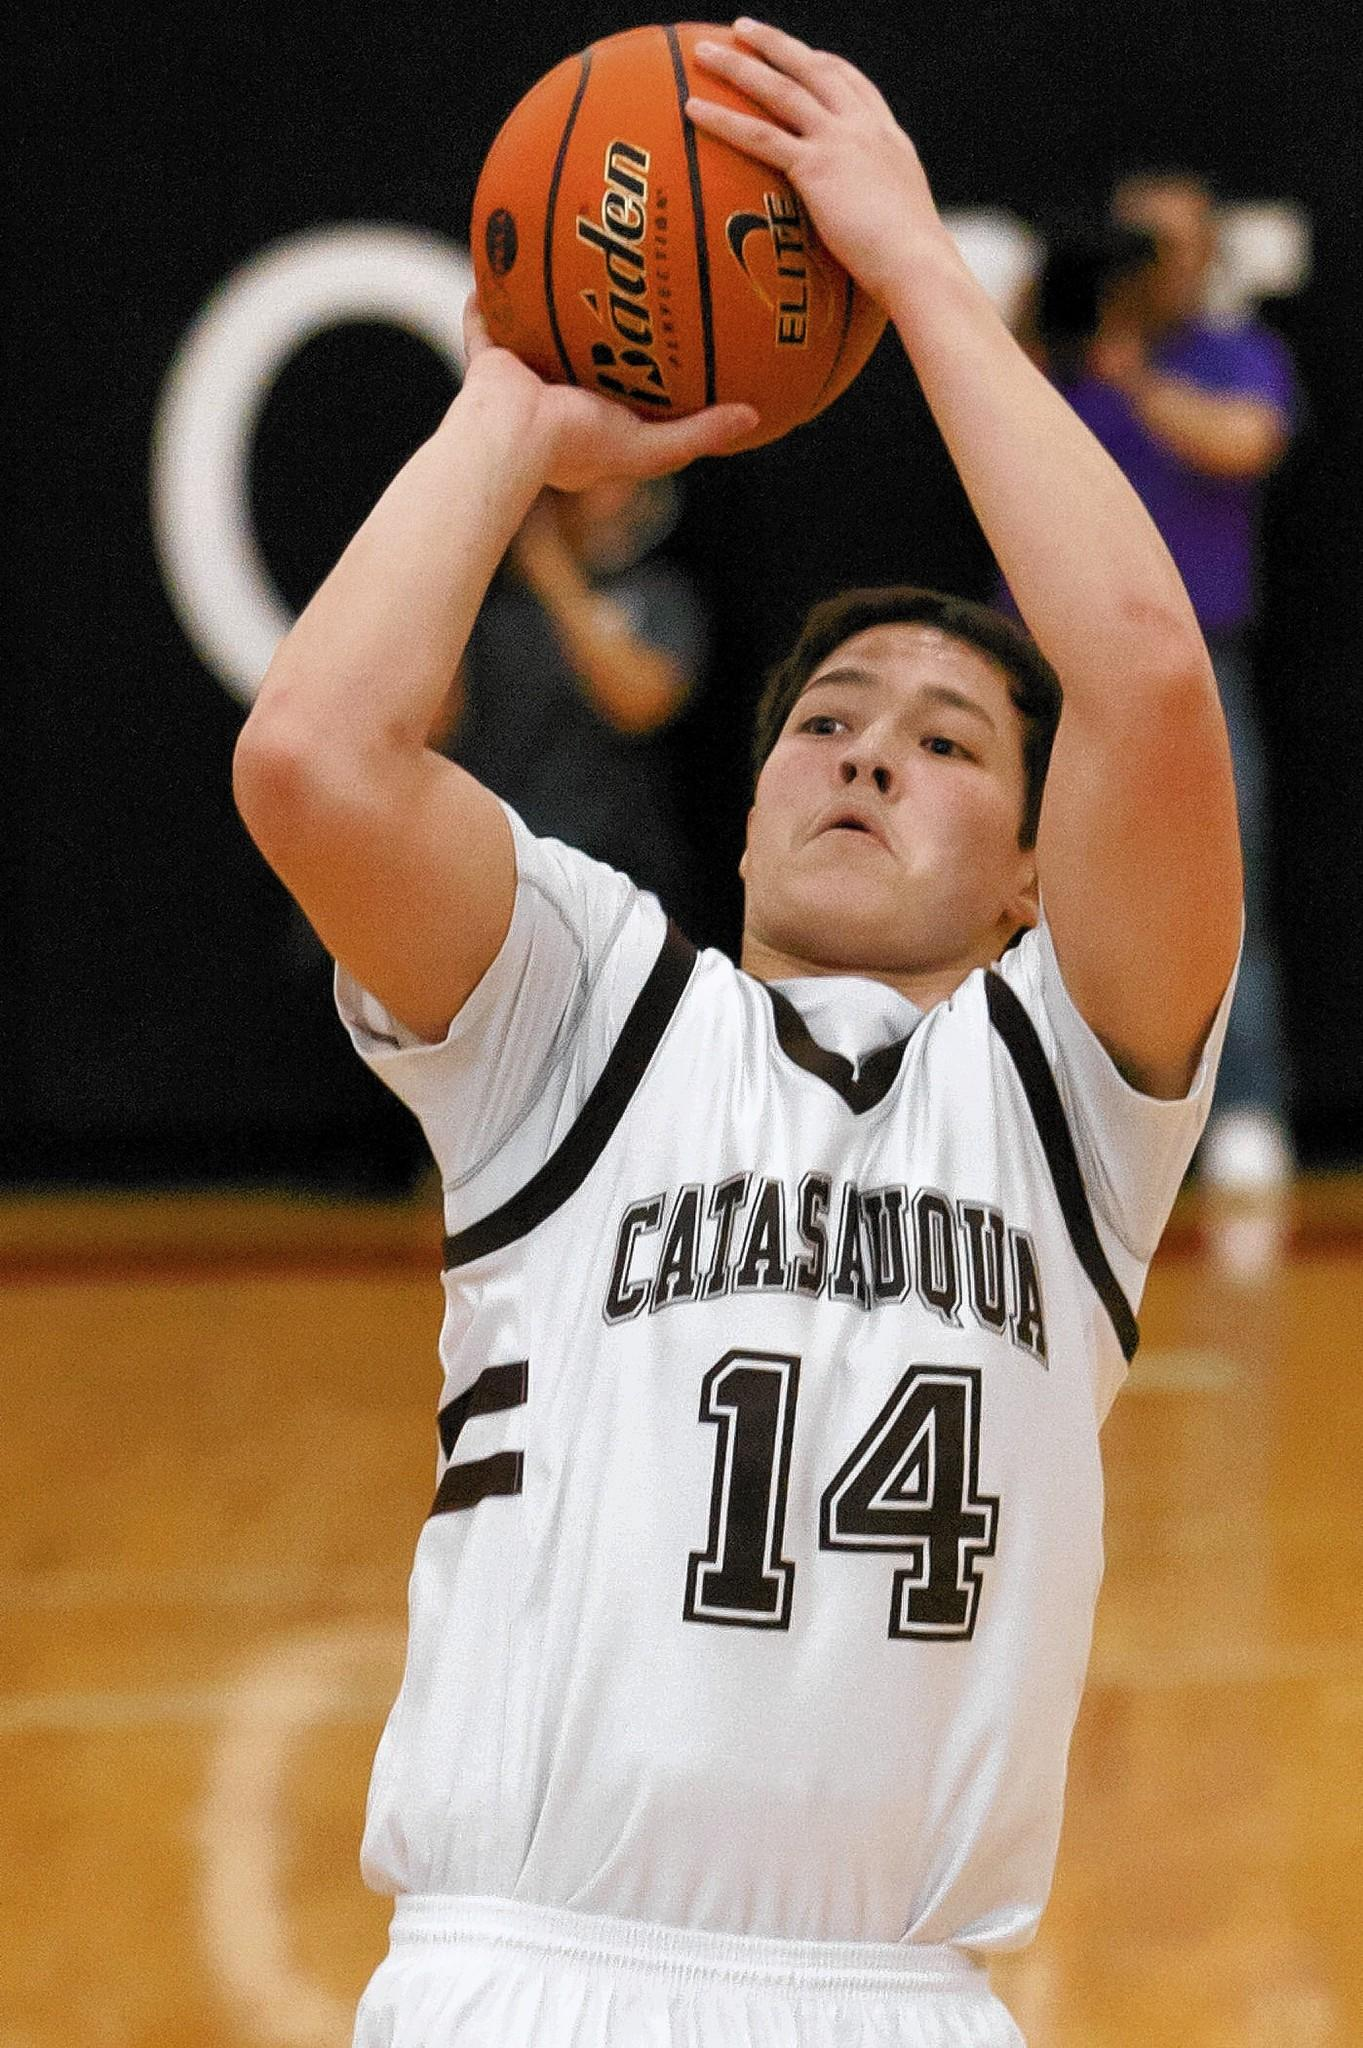 Brandon Purrone played a key role as Catty advanced to the Colonial League finals.